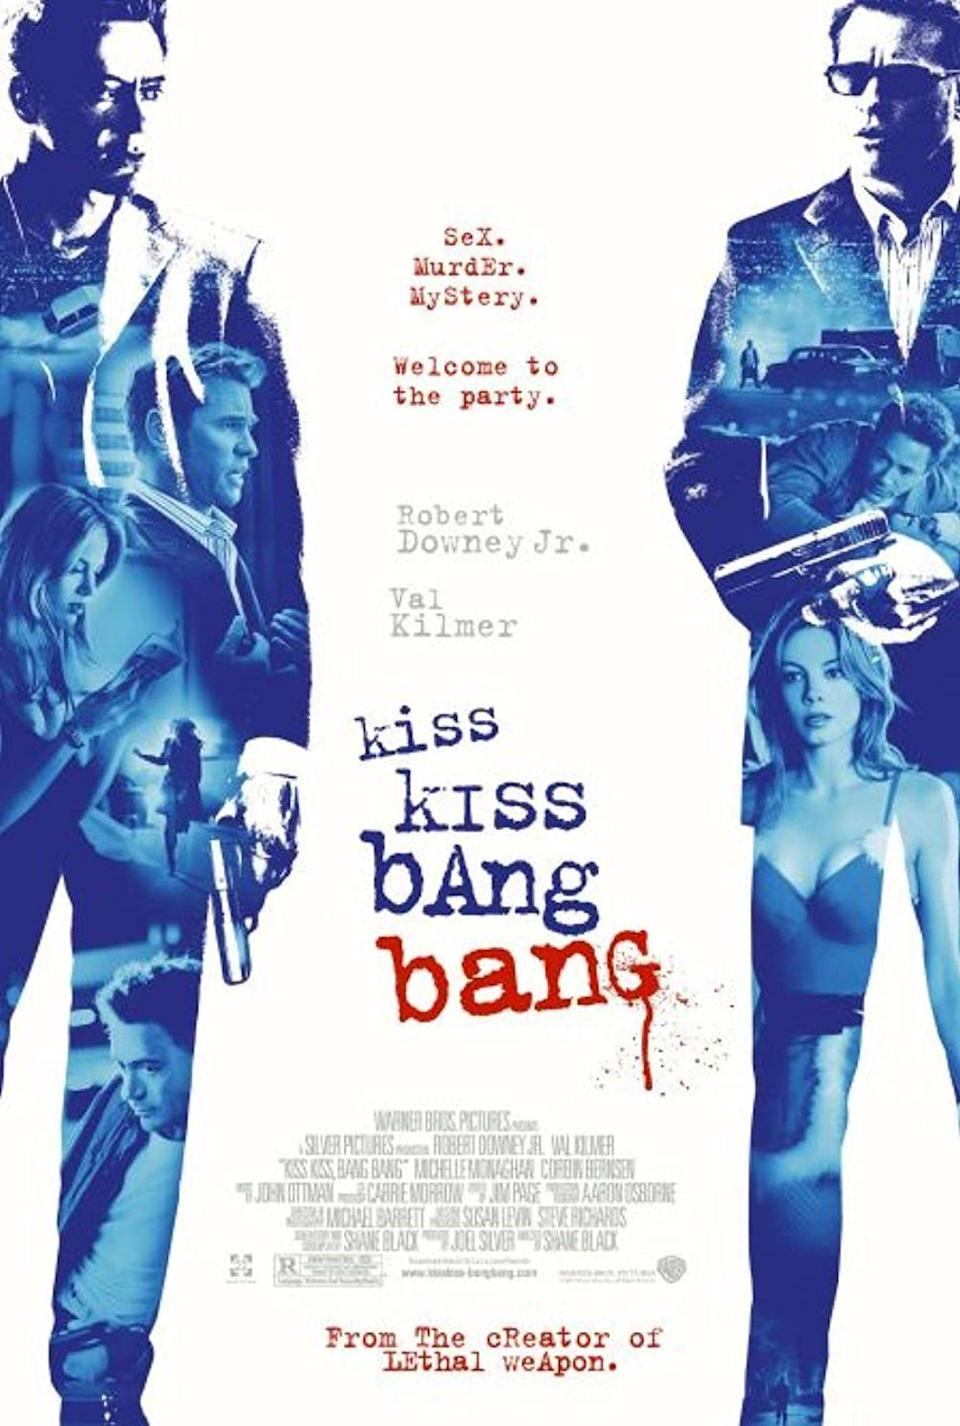 "<p>Robert Downey Jr. stars in this black comedy crime film described by the director himself<a href=""https://www.seattletimes.com/entertainment/kiss-kiss-bang-bang-screwball-murder-mystery/"" rel=""nofollow noopener"" target=""_blank"" data-ylk=""slk:as &quot;half romantic comedy, half murder mystery.&quot;"" class=""link rapid-noclick-resp""> as ""half romantic comedy, half murder mystery.""</a> The story follows a crook named Harry Lockhart, who gets tangled up in a murderous conspiracy in Hollywood after stumbling into an audition for a mystery film.</p><p><a class=""link rapid-noclick-resp"" href=""https://www.amazon.com/Kiss-Bang-Robert-Downey-Jr/dp/B002QYSZBO?tag=syn-yahoo-20&ascsubtag=%5Bartid%7C10055.g.34396232%5Bsrc%7Cyahoo-us"" rel=""nofollow noopener"" target=""_blank"" data-ylk=""slk:WATCH ON AMAZON"">WATCH ON AMAZON</a></p>"